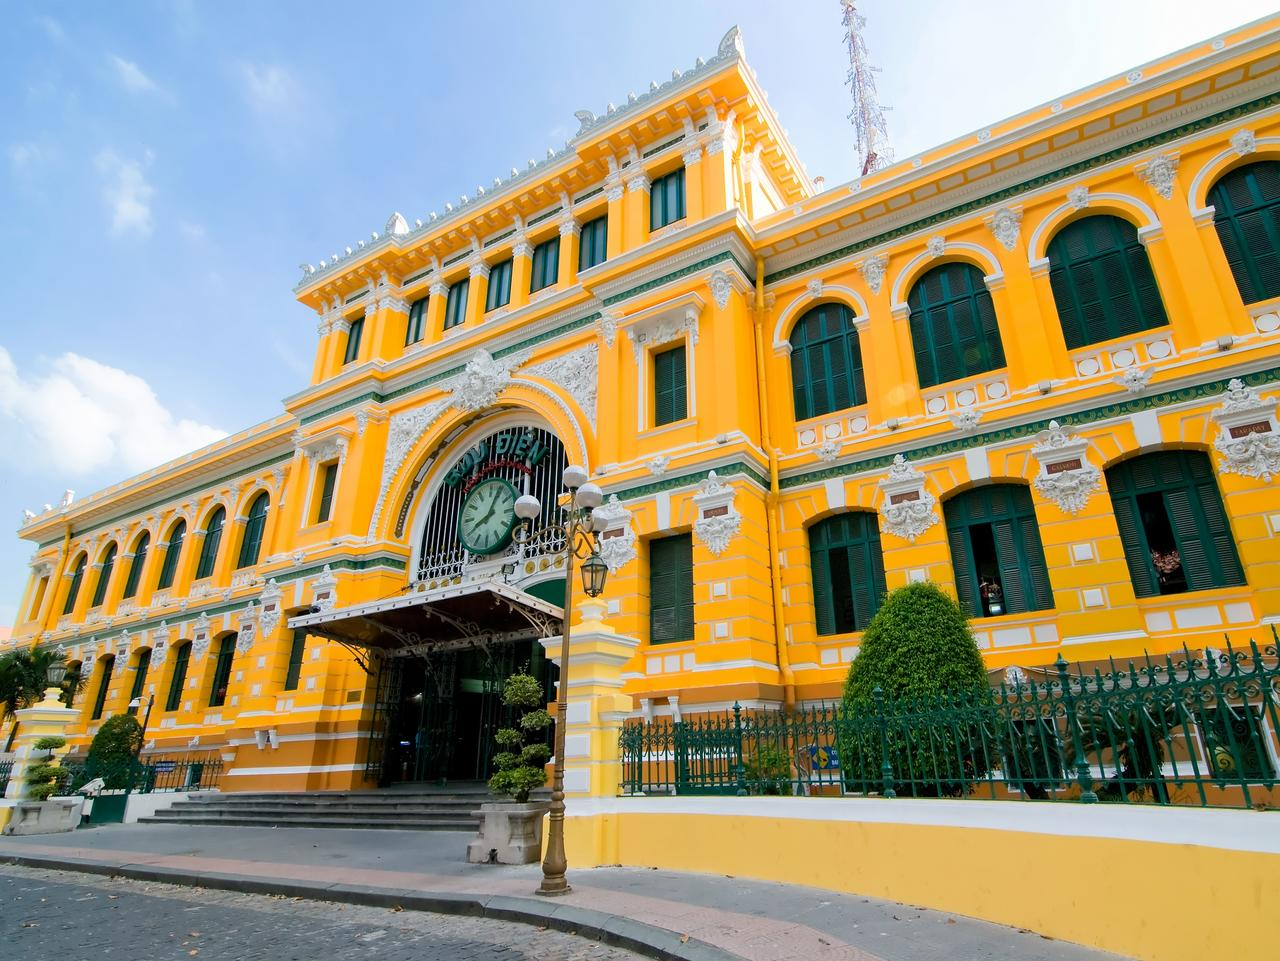 Saigon Central Post Office of Ho Chi Minh city, Vietnam